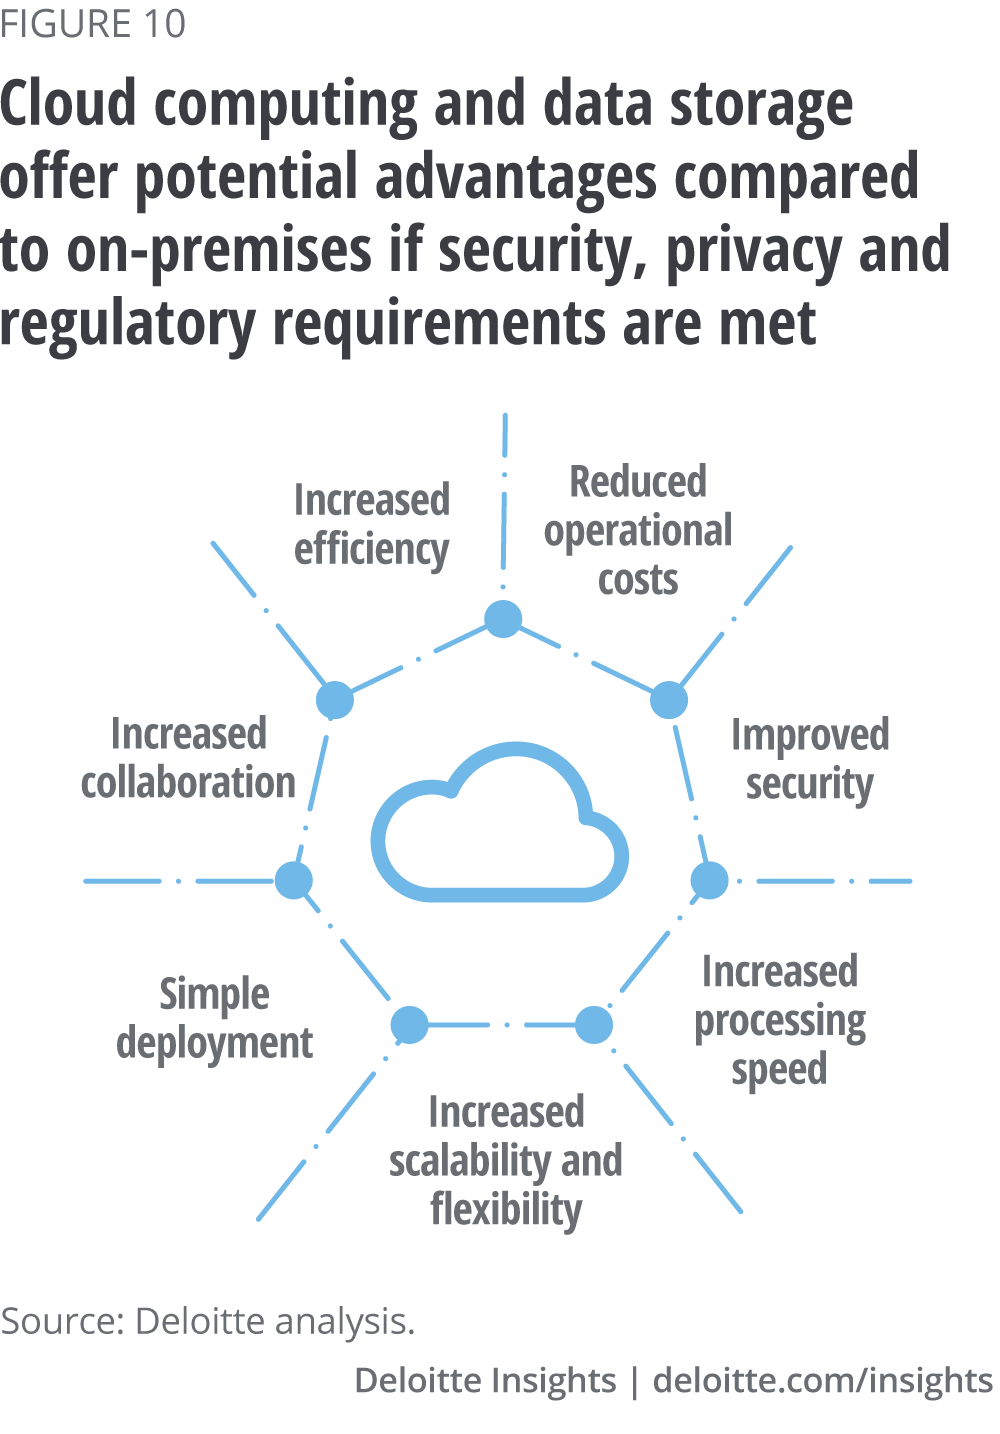 Cloud computing and data storage offer potential advantages compared to on-premises if security, privacy and regulatory requirements are met